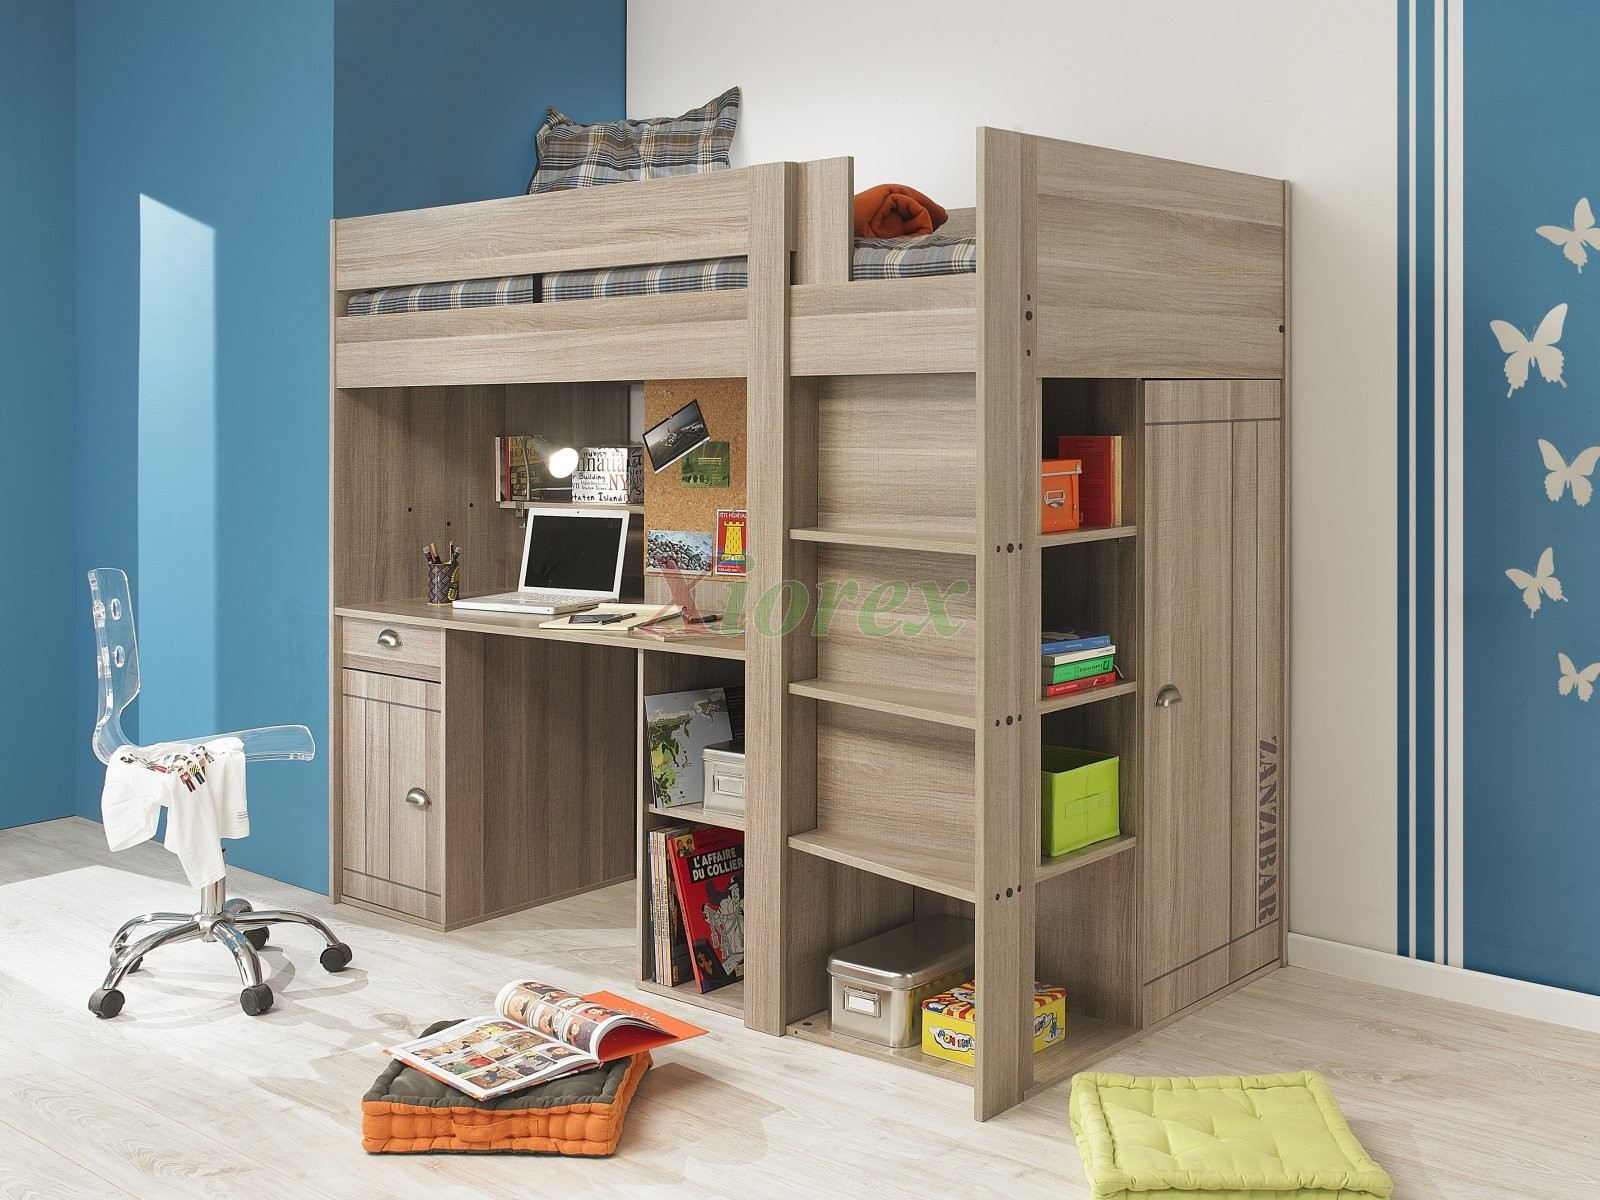 Bunk beds with desk and closet - Largo Loft Beds For Teenage Girls And Boys By Gautier Furniture